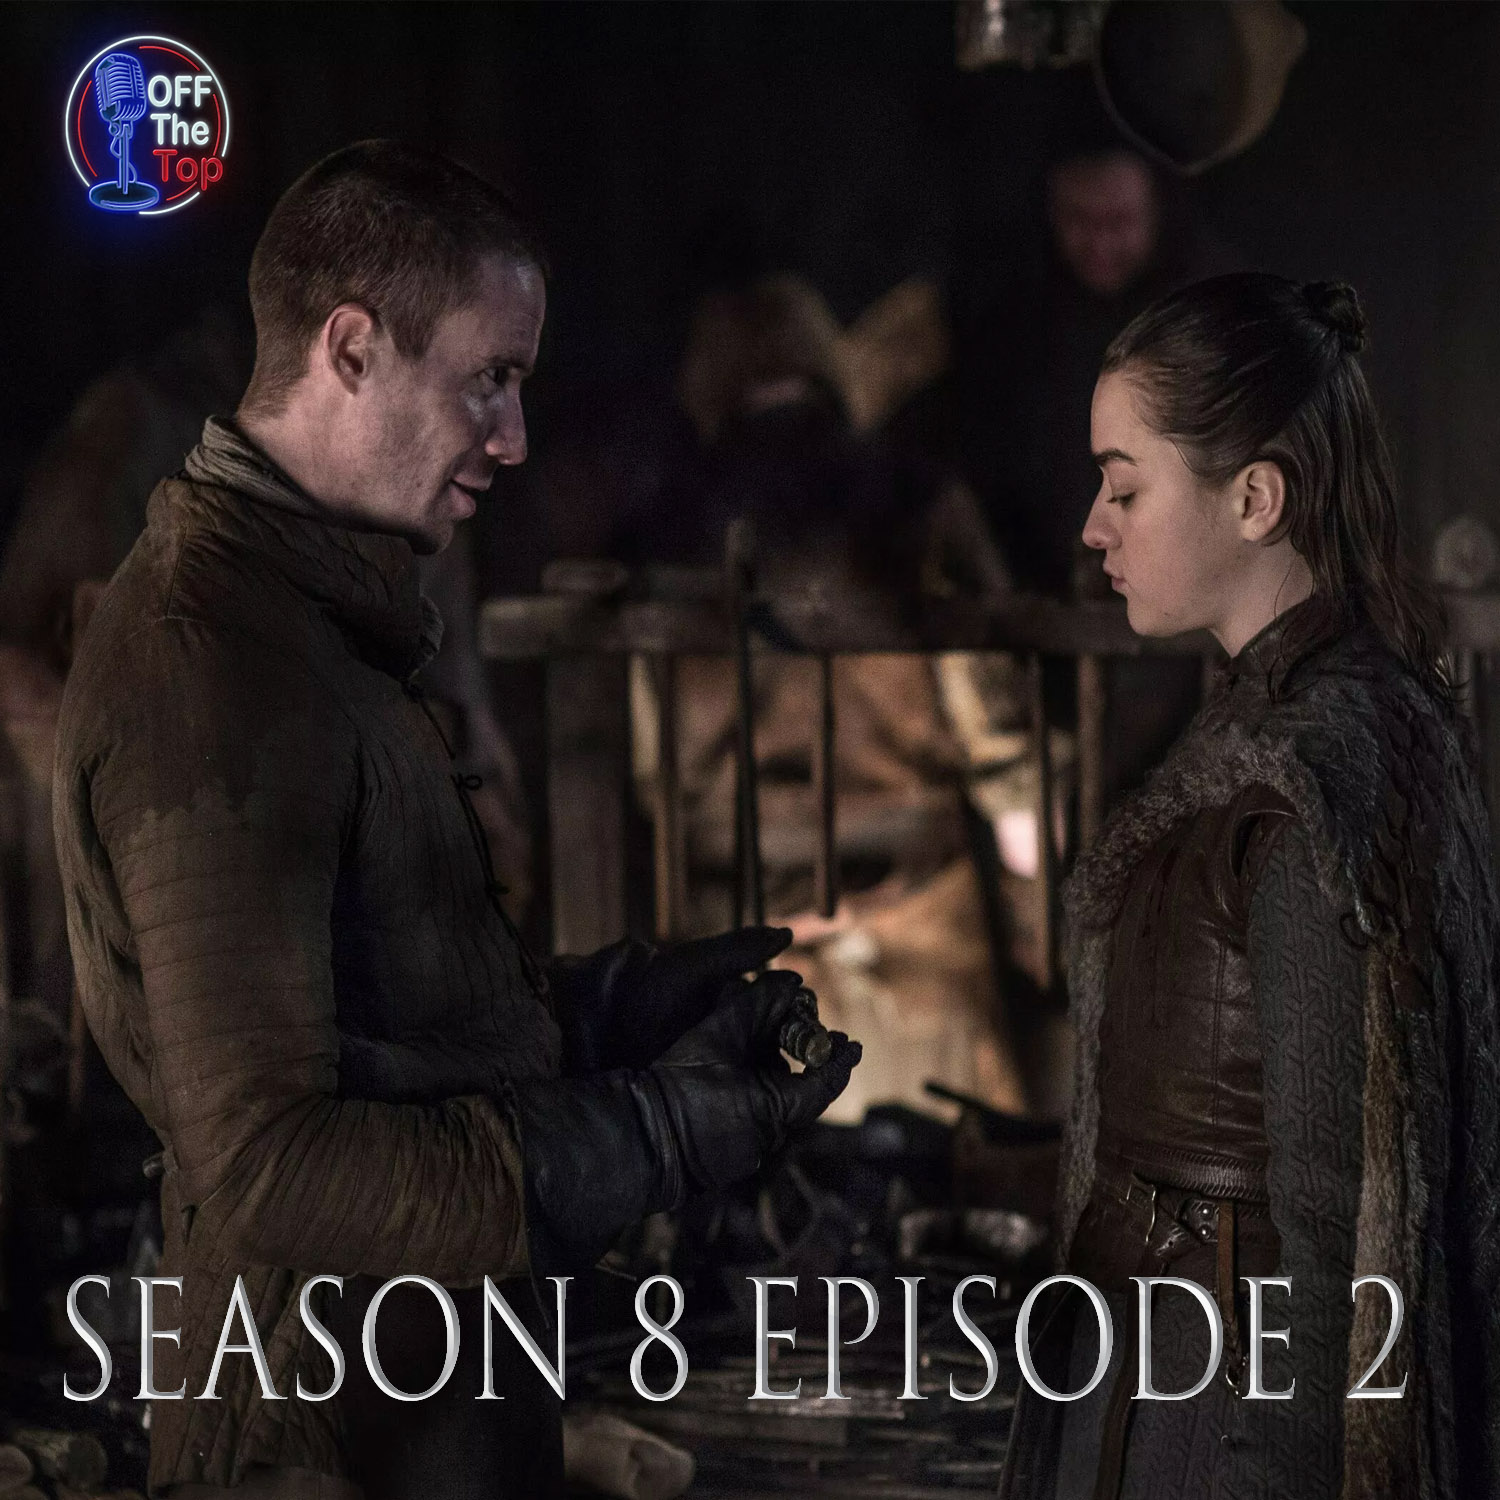 """Game Of Thrones Season 8 Episode 2 """"A Knight of the Seven Kingdoms"""" Breakdown and Review"""